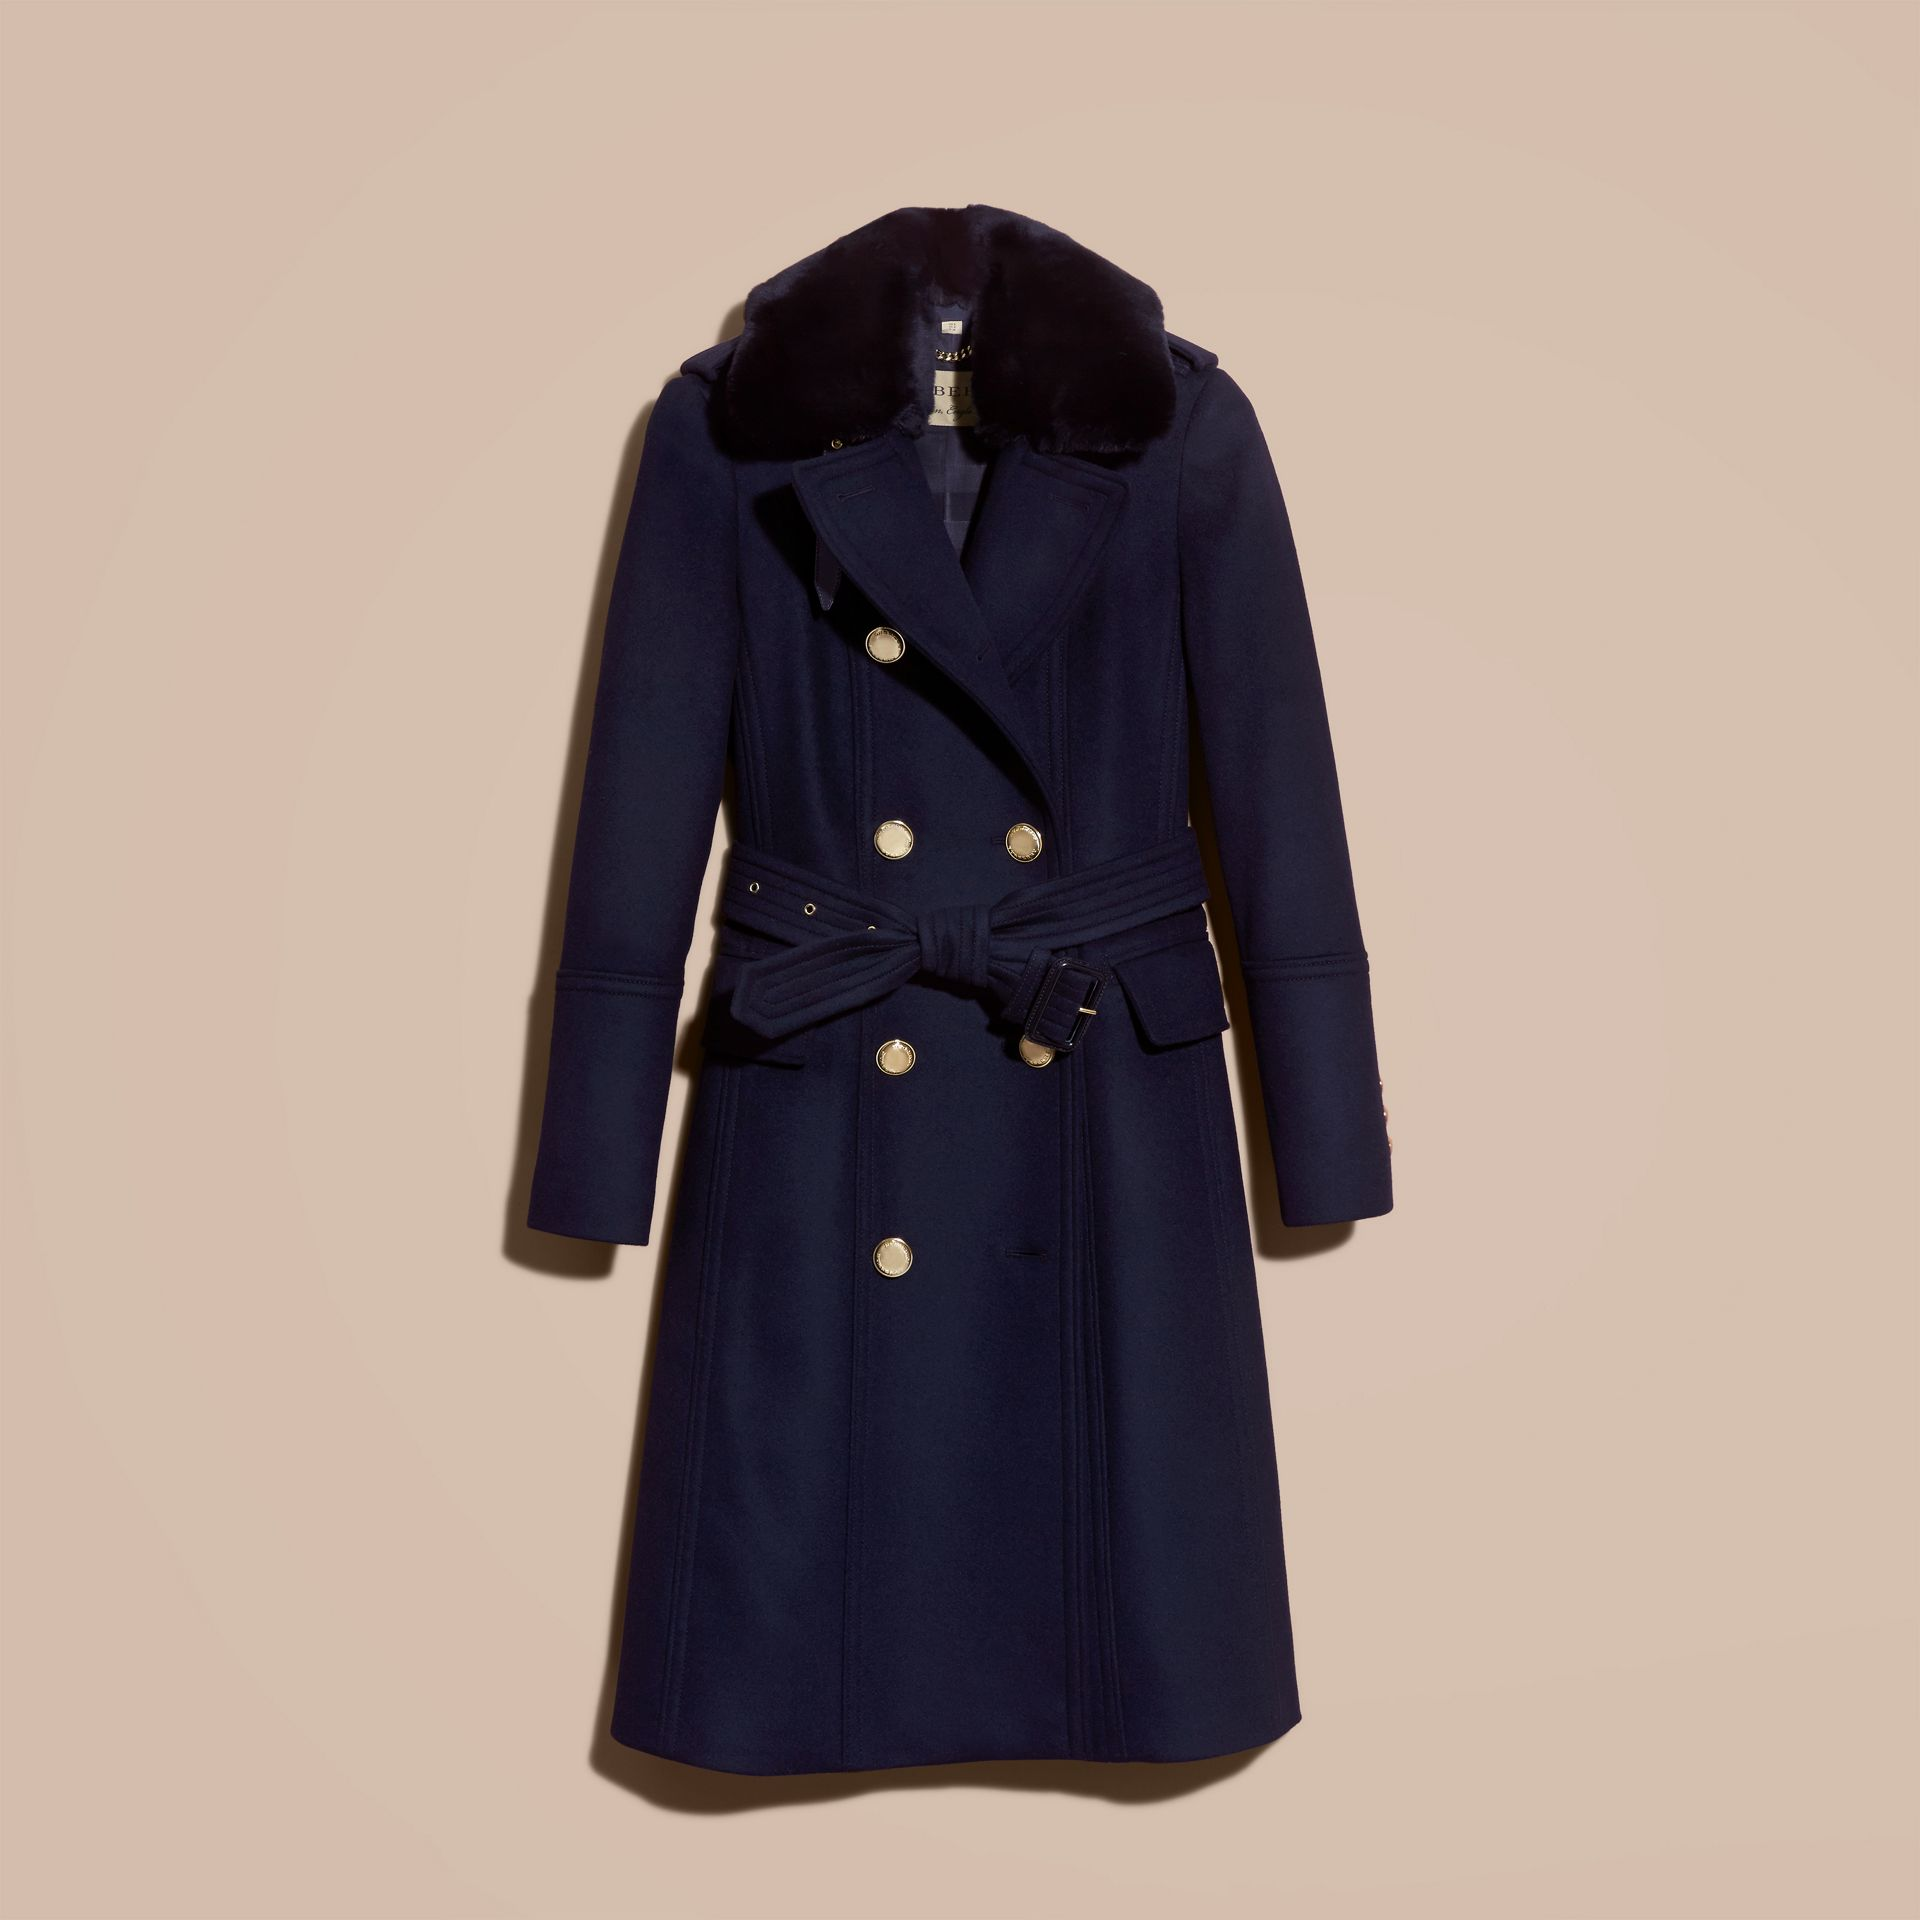 Navy Wool Cashmere Trench Coat with Detachable Fur Collar - gallery image 4